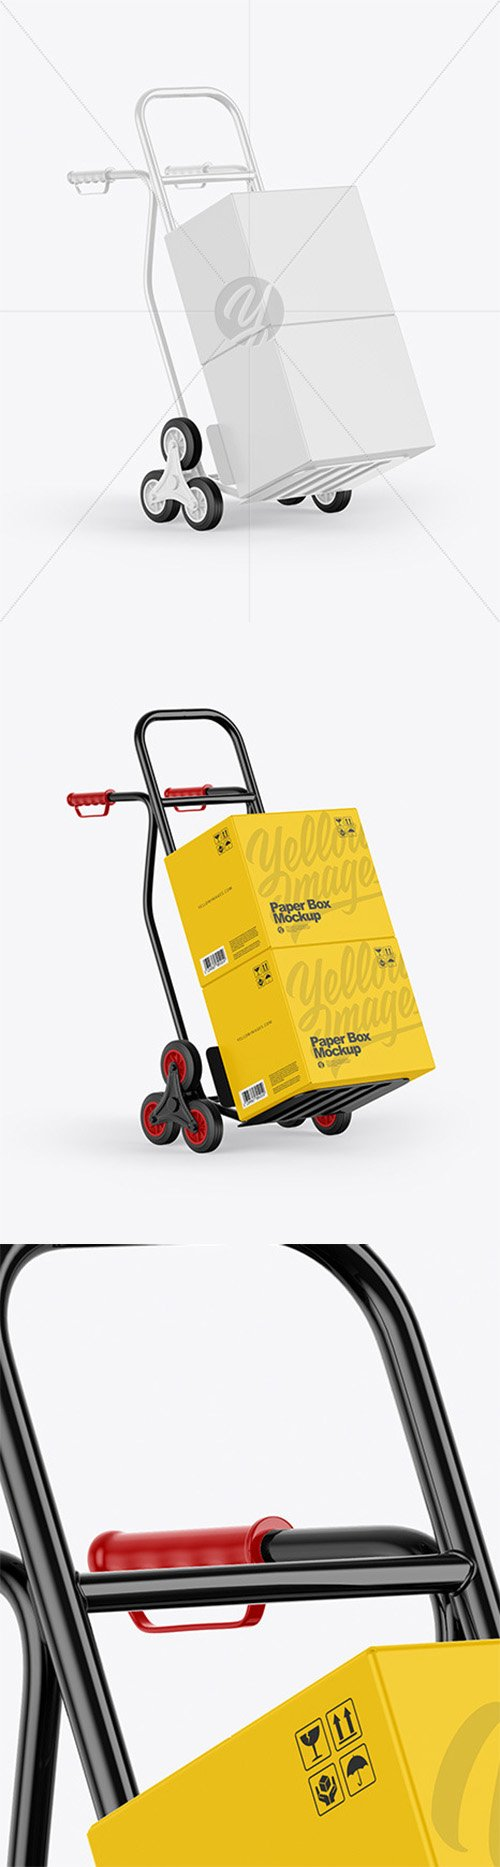 Hand Truck With Boxes Mockup 58380 TIF